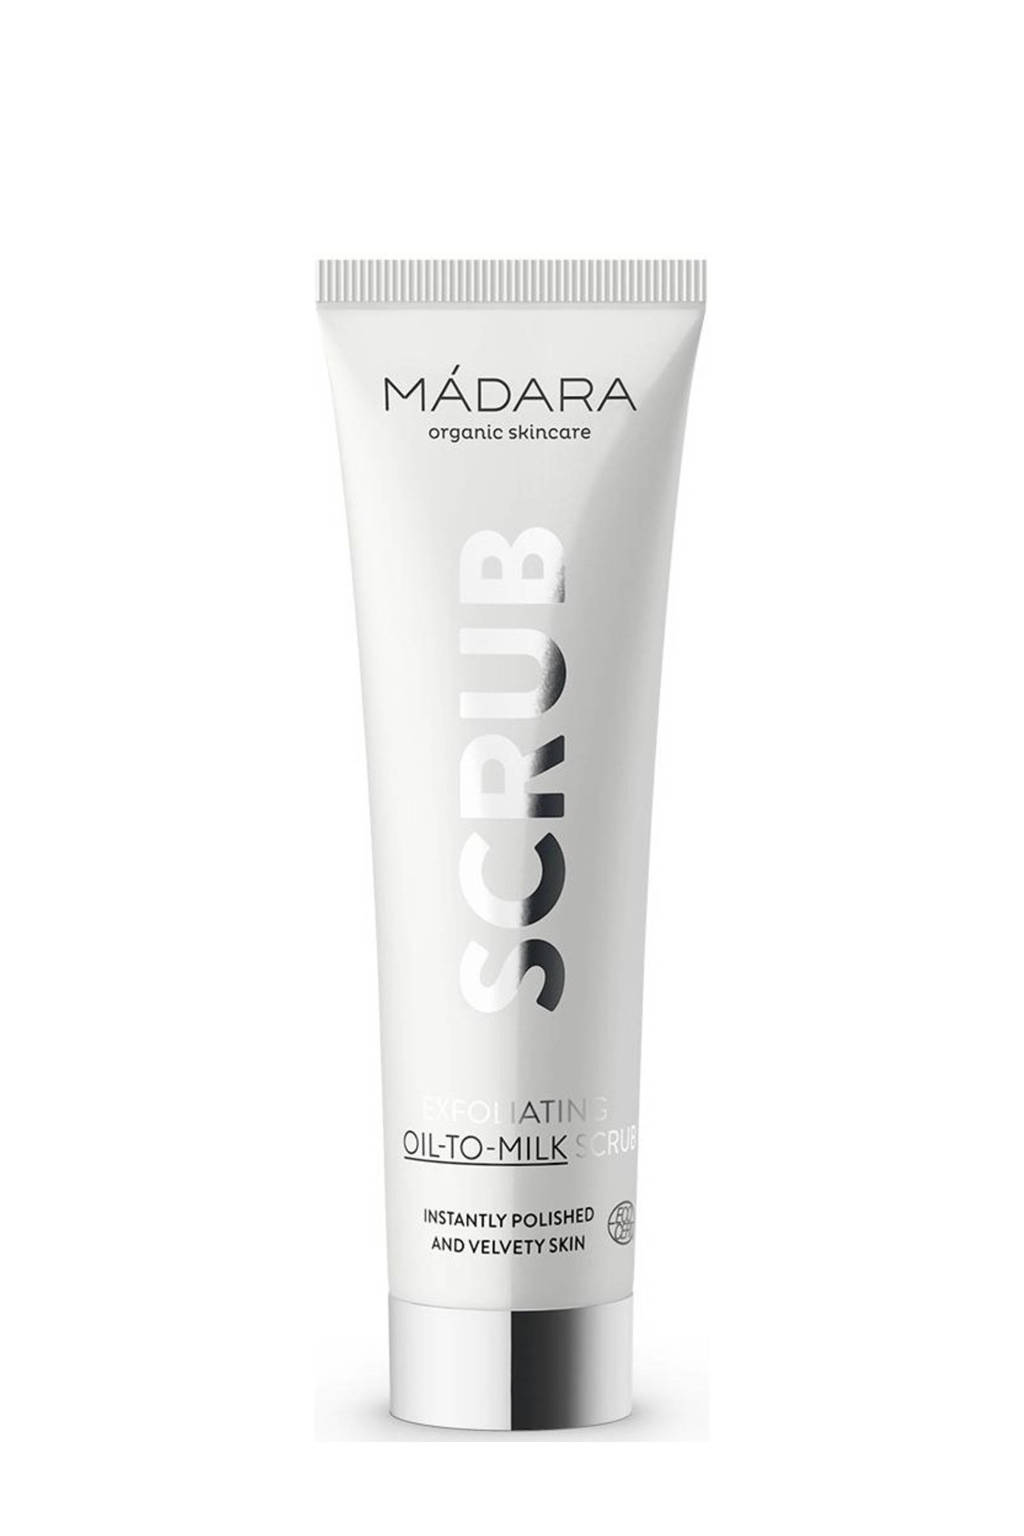 Mádara Exfoliating Oil-To-Milk scrub